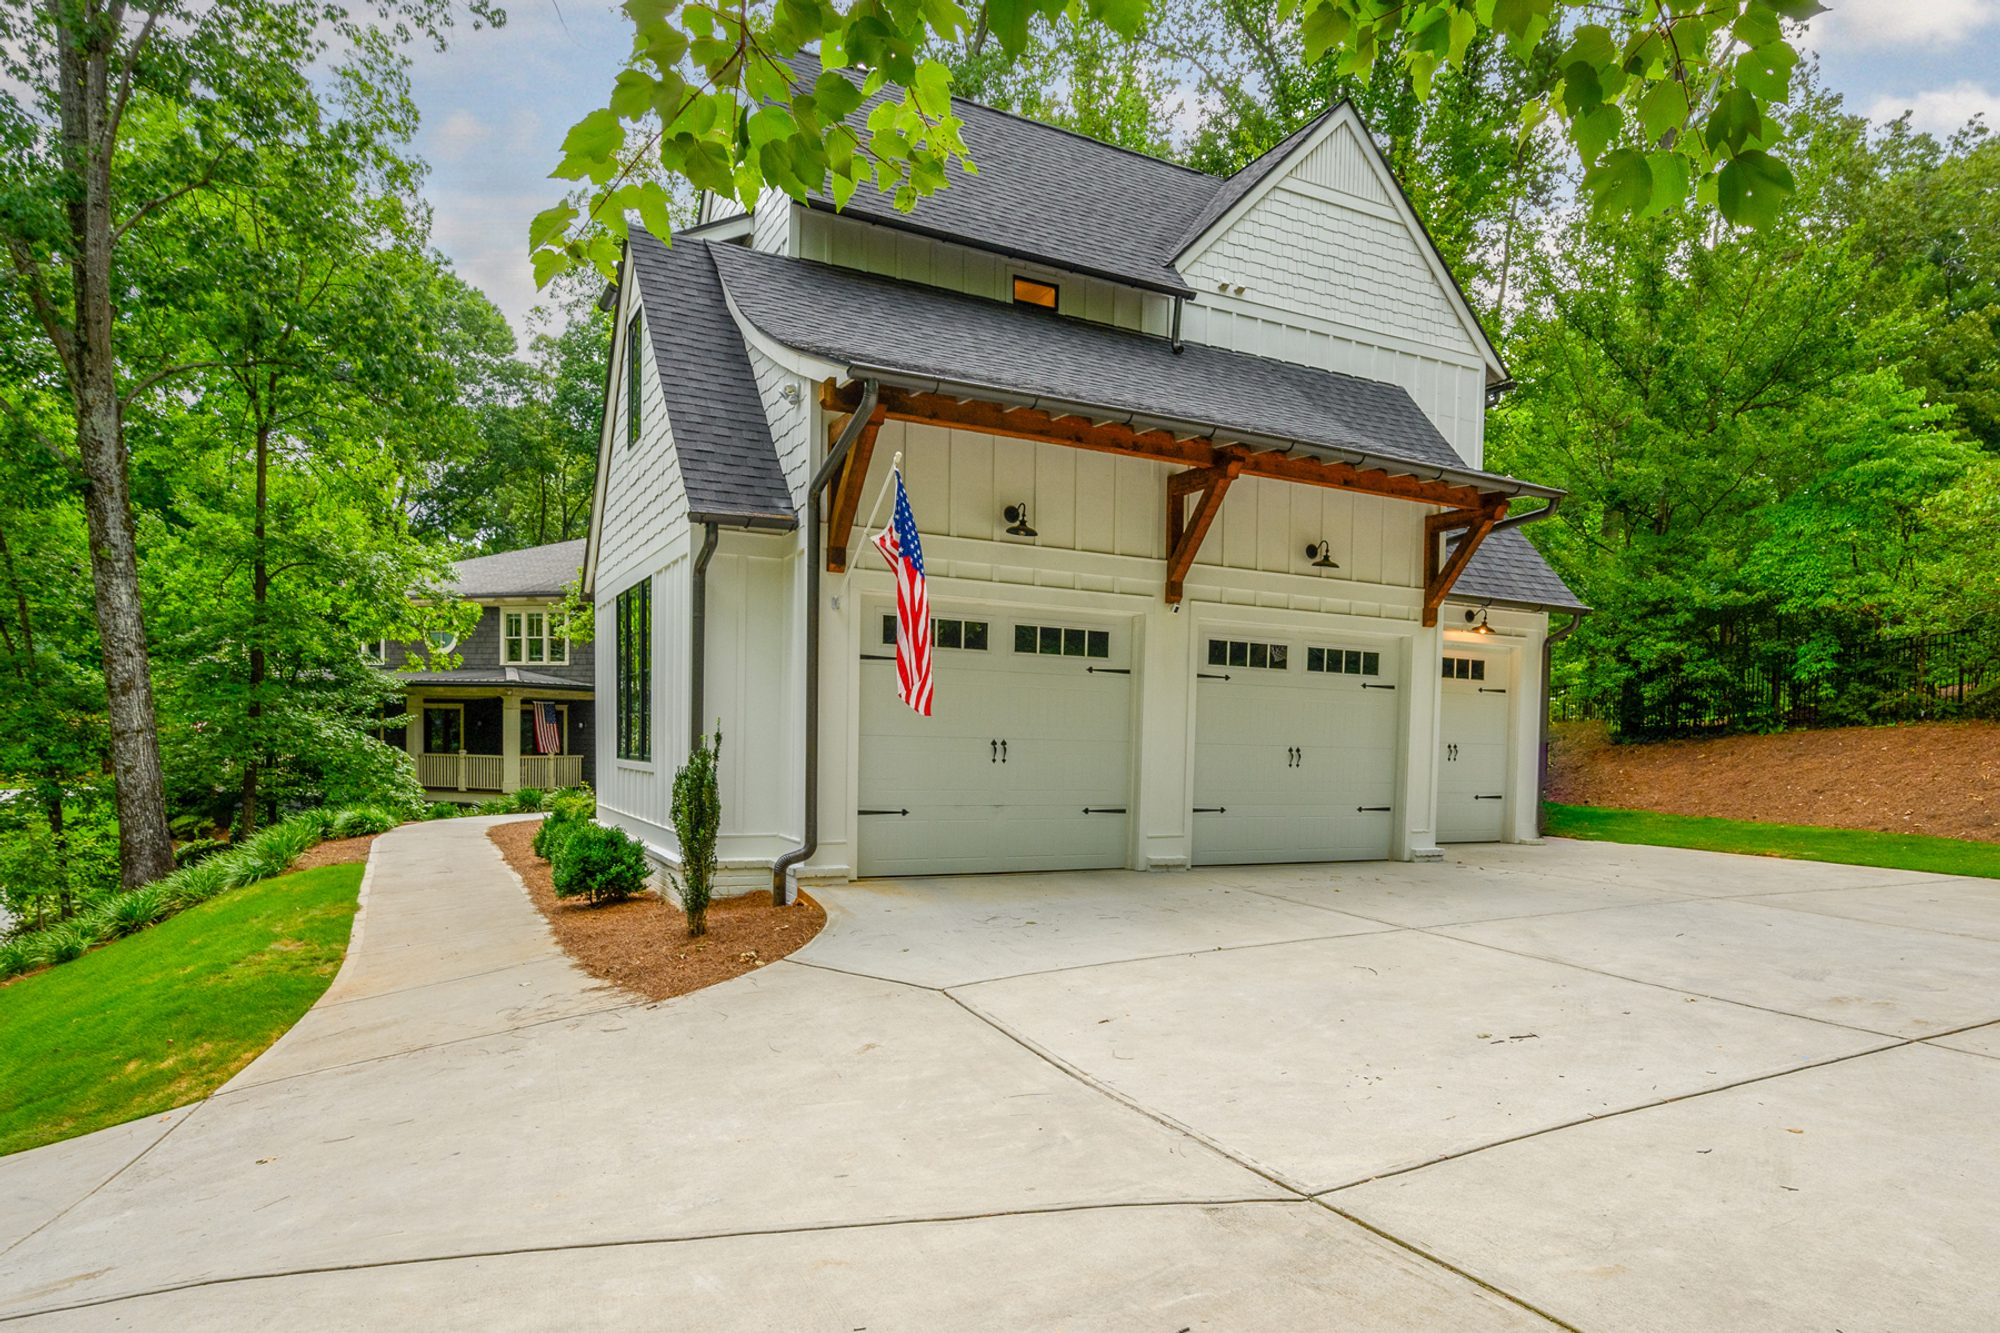 3 Car detached garage with a transitional style. vertical siding with exposed wood.